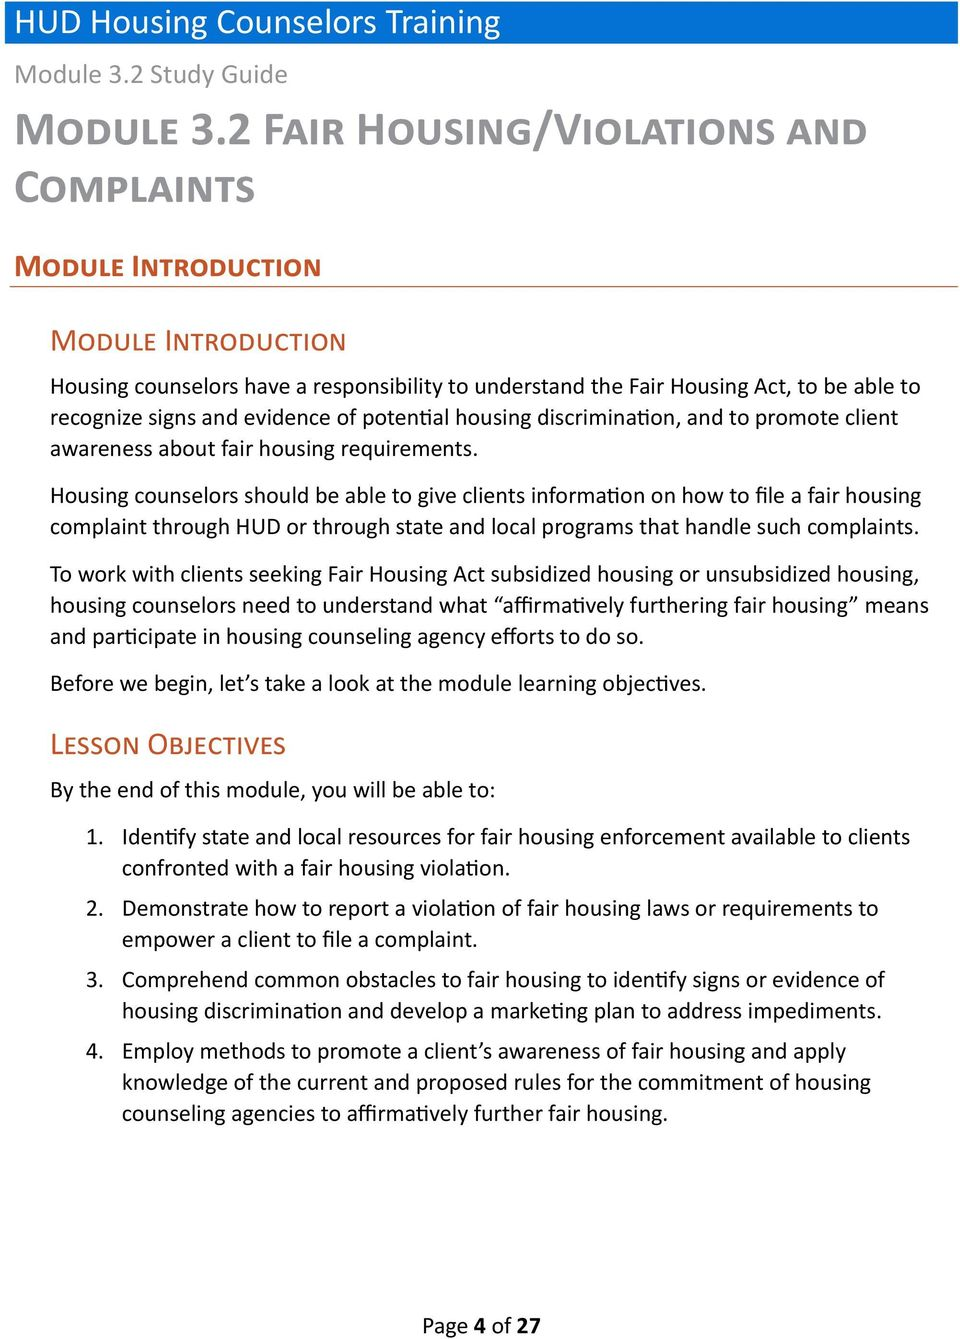 HUD Housing Counselors Training - PDF